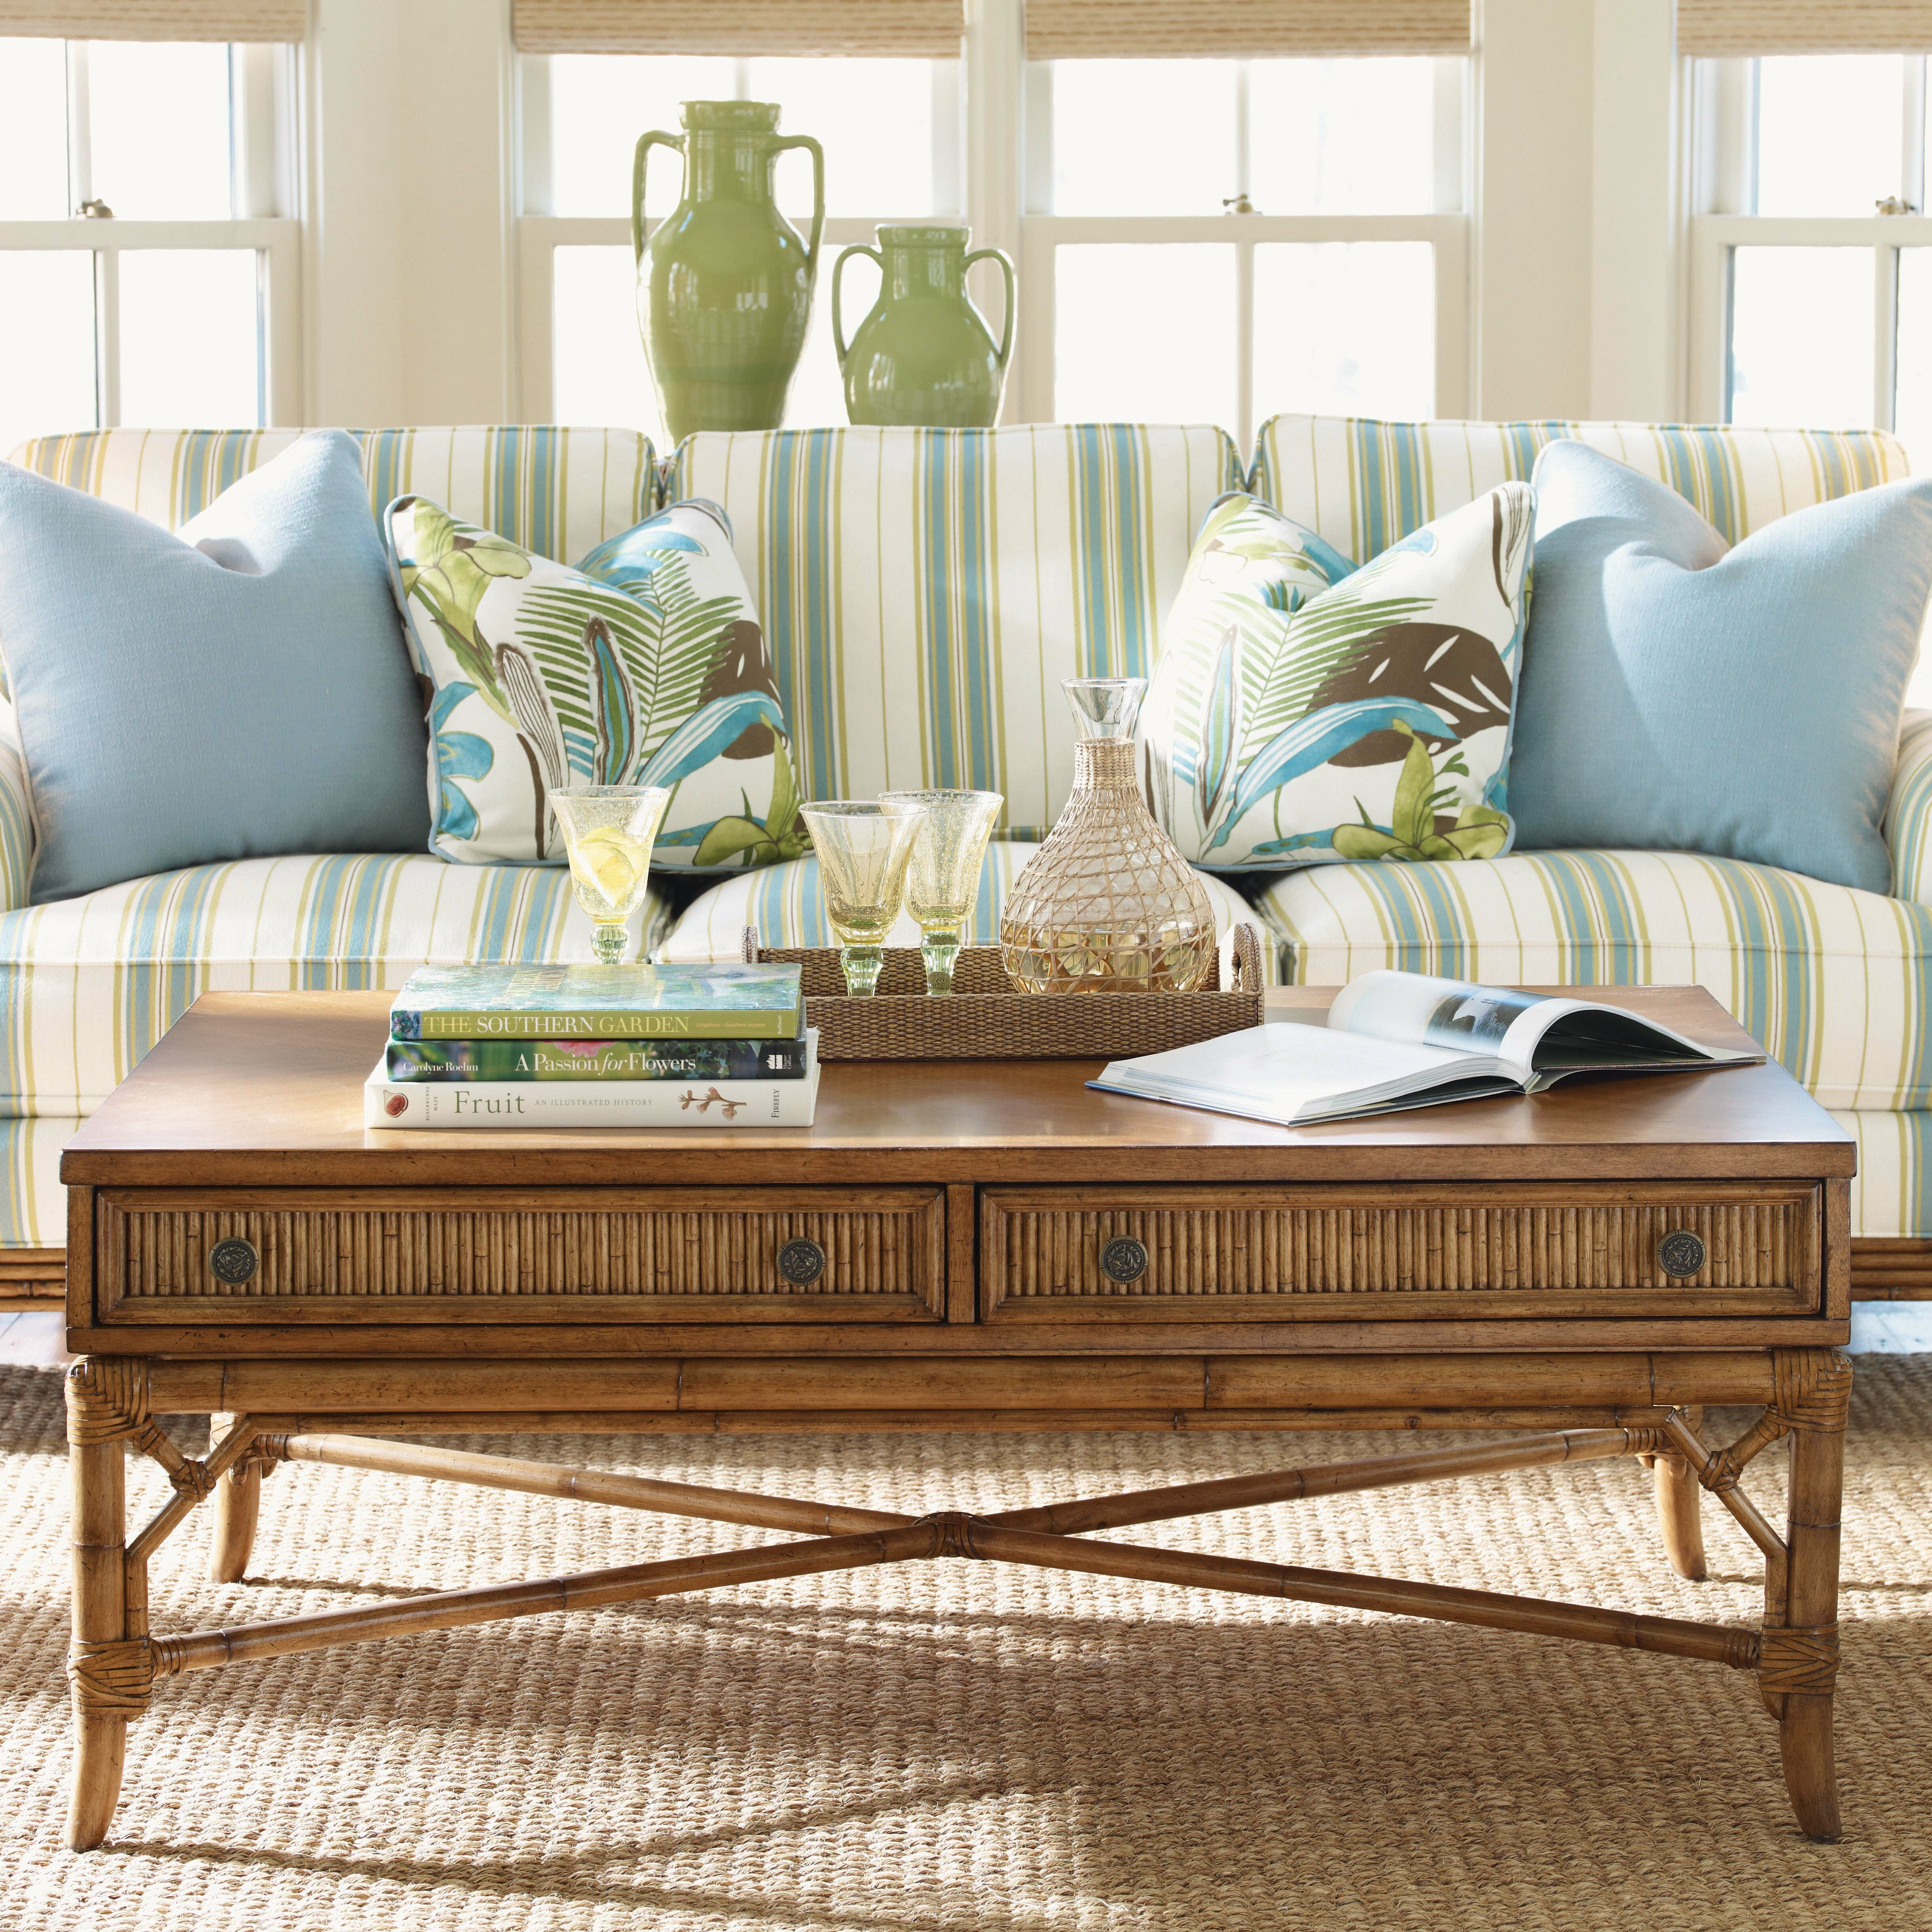 Tommy Bahama Dining Room Furniture Collection Tommy Bahama Home Beach House Wayfair